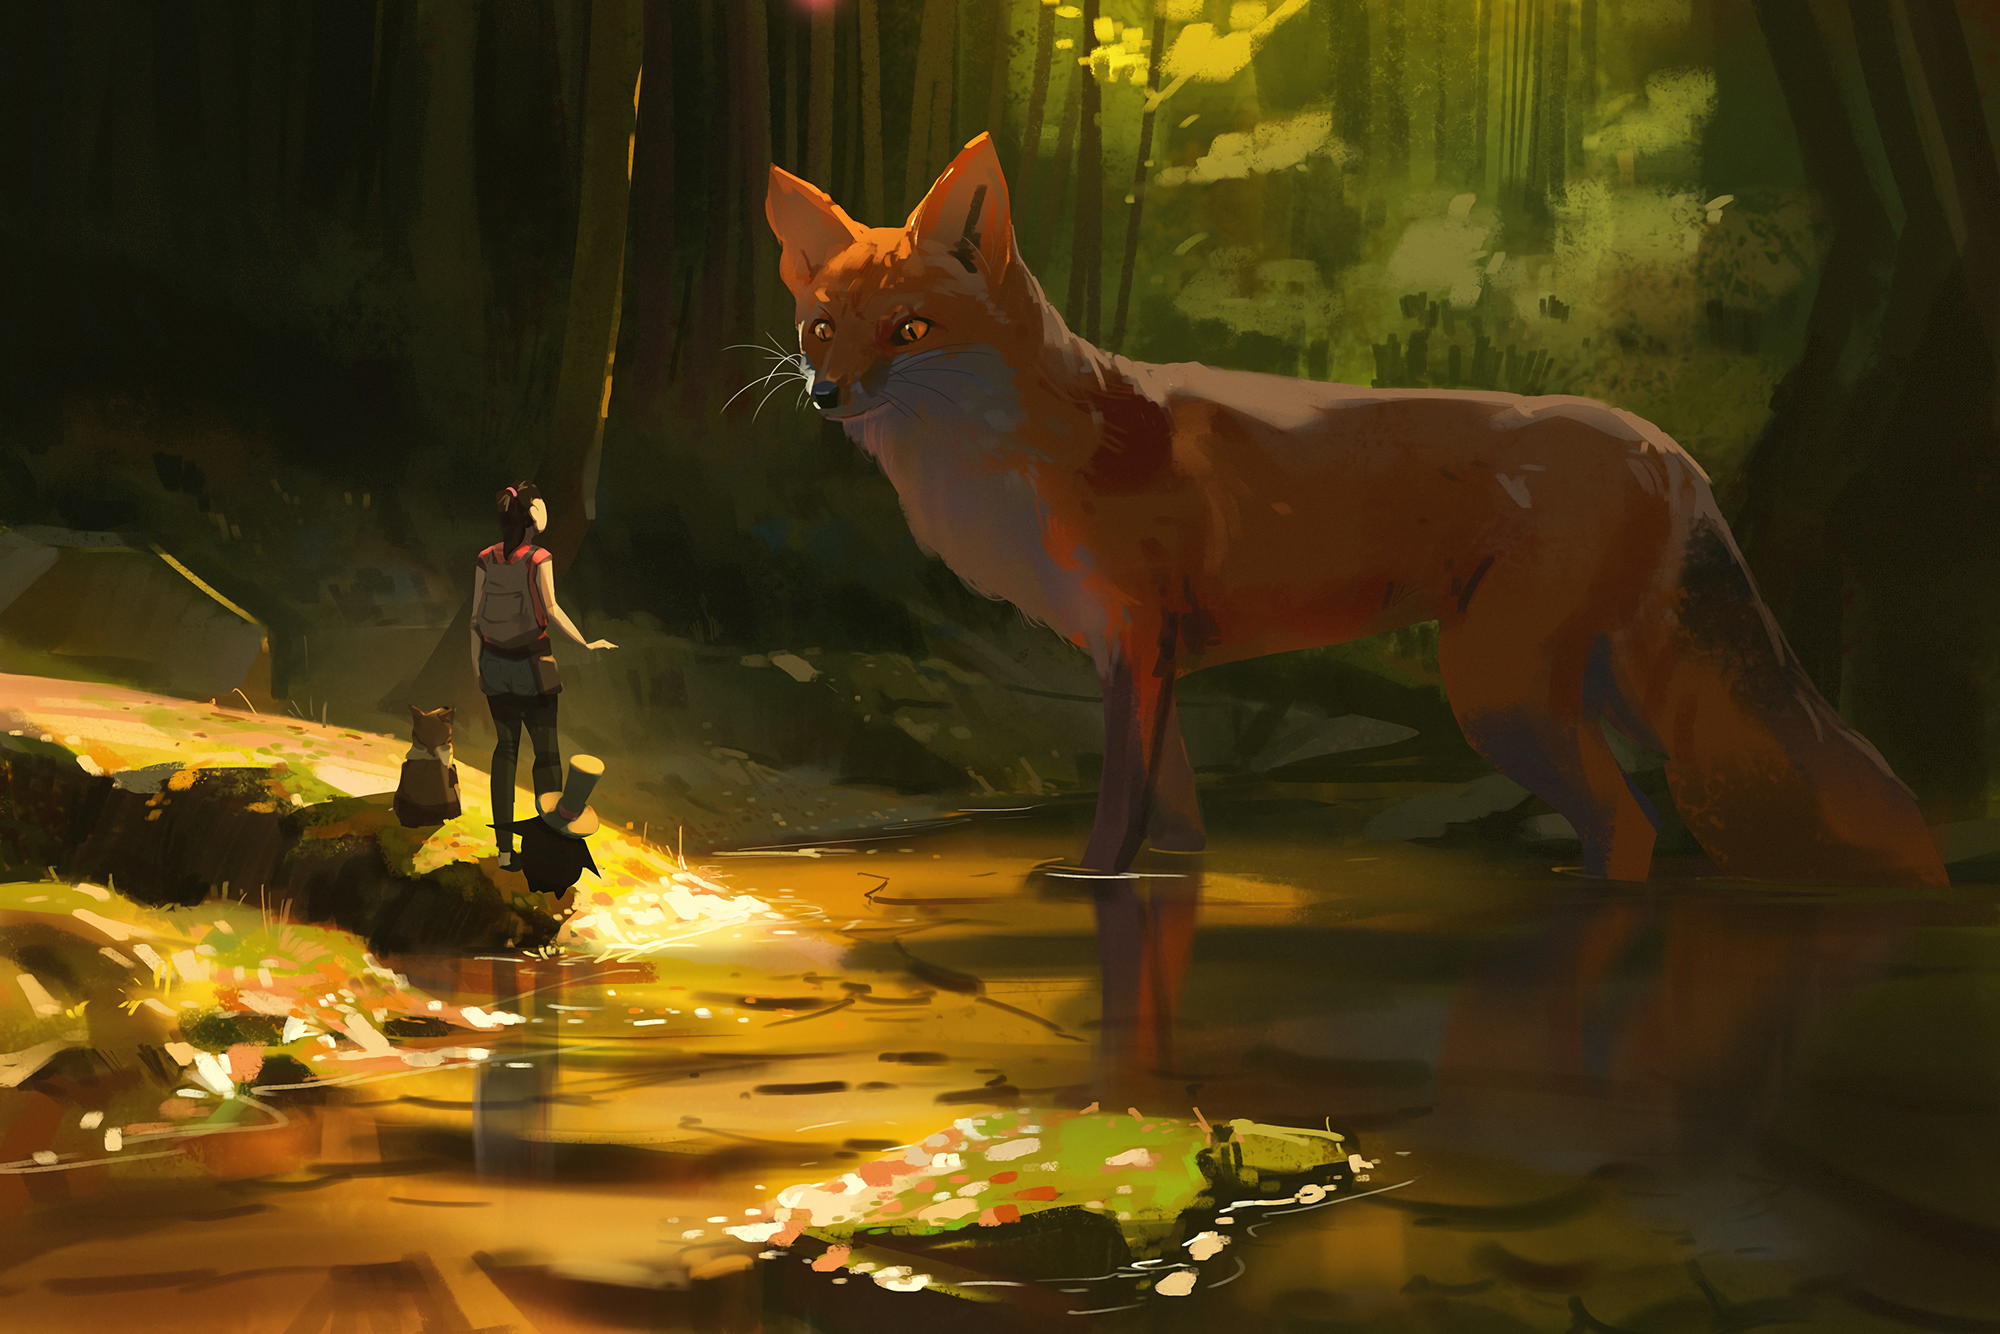 General 2000x1334 digital art artwork fantasy art Atey Ghailan animals forest swamp pond dark fox